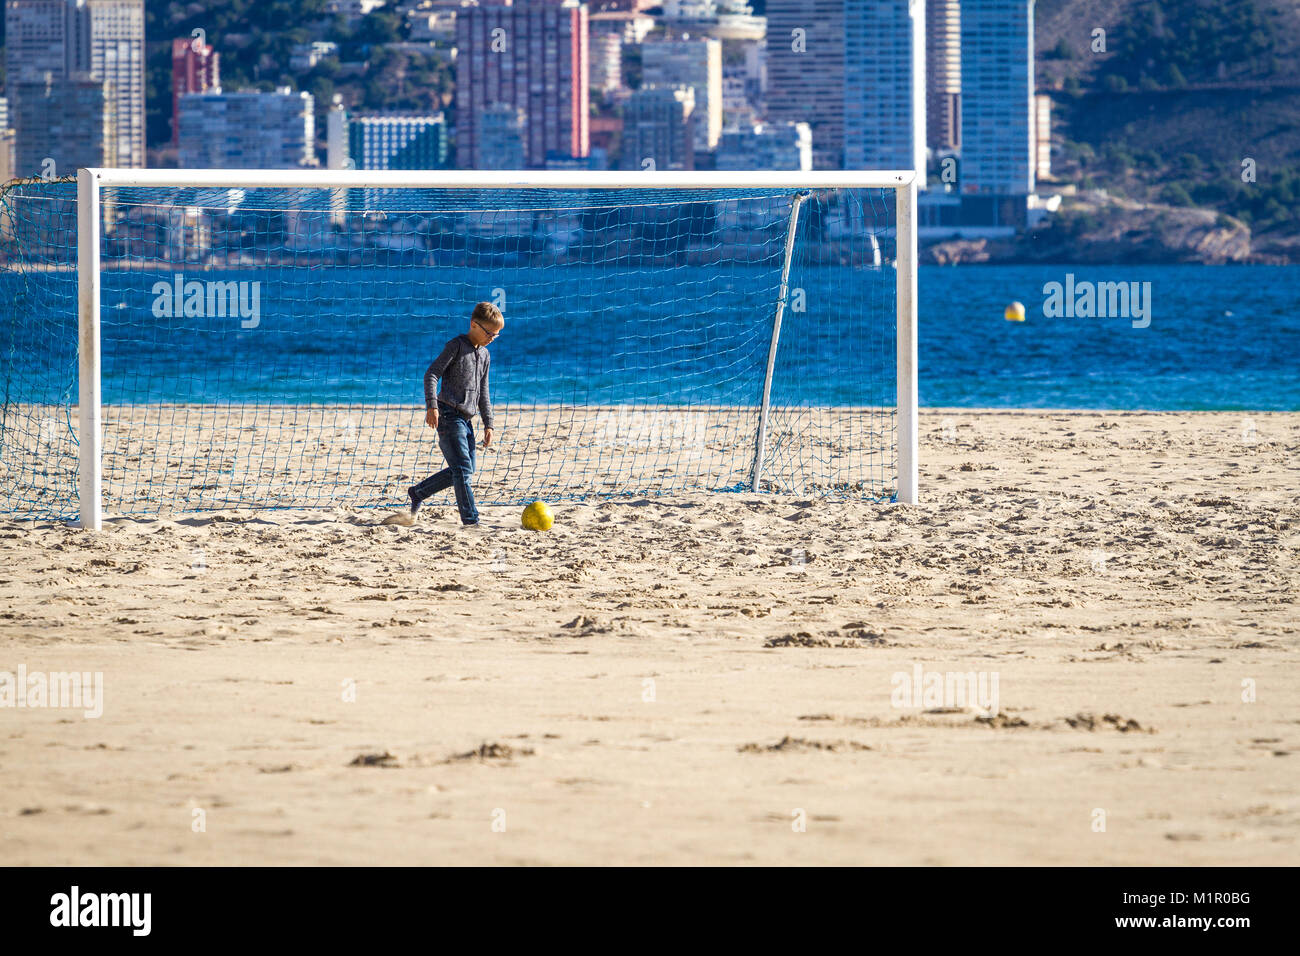 Boy playing football on the beach - Stock Image